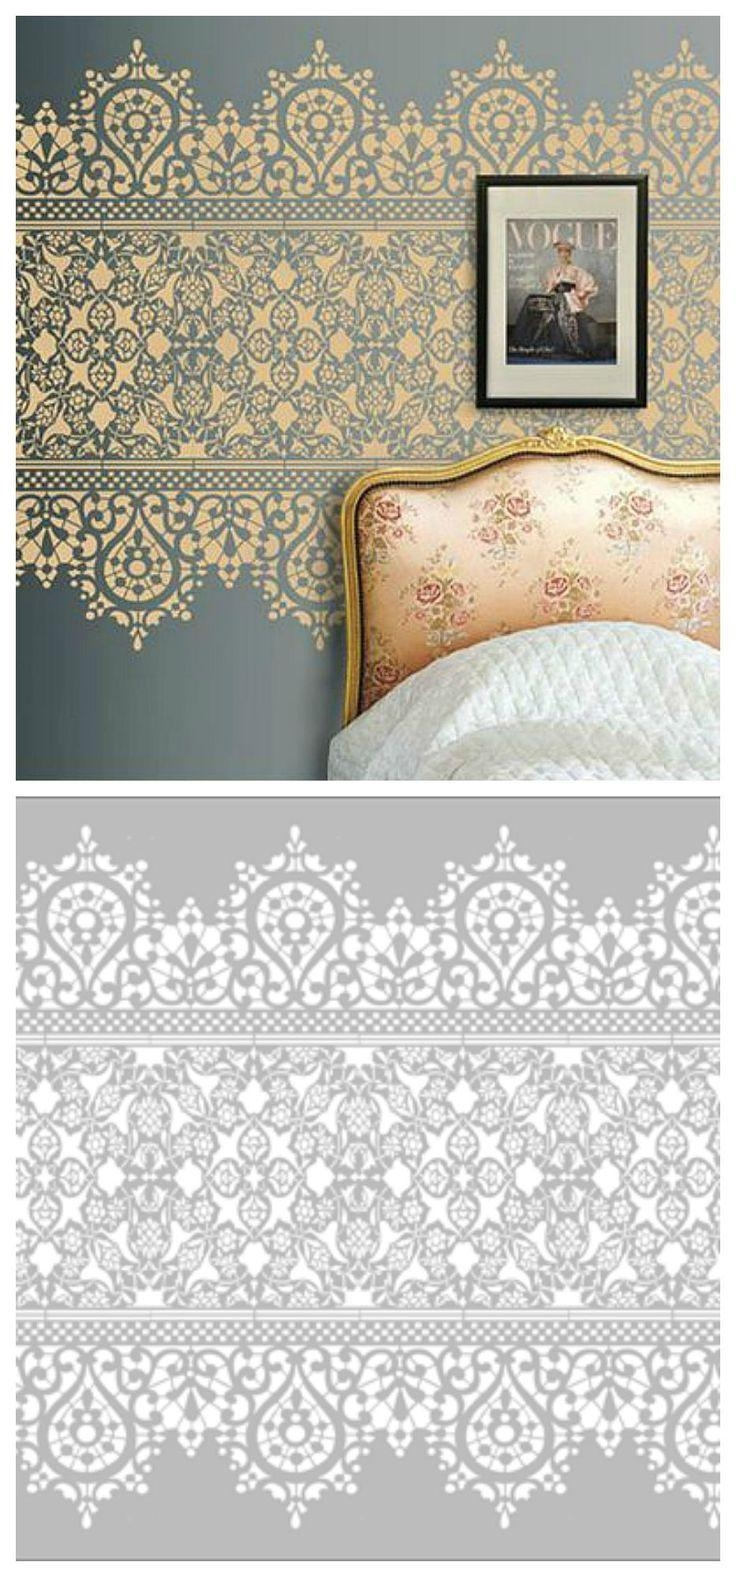 Best 25+ Wall Stencil Patterns Ideas On Pinterest | Wall Regarding Space Stencils For Walls (Image 8 of 20)